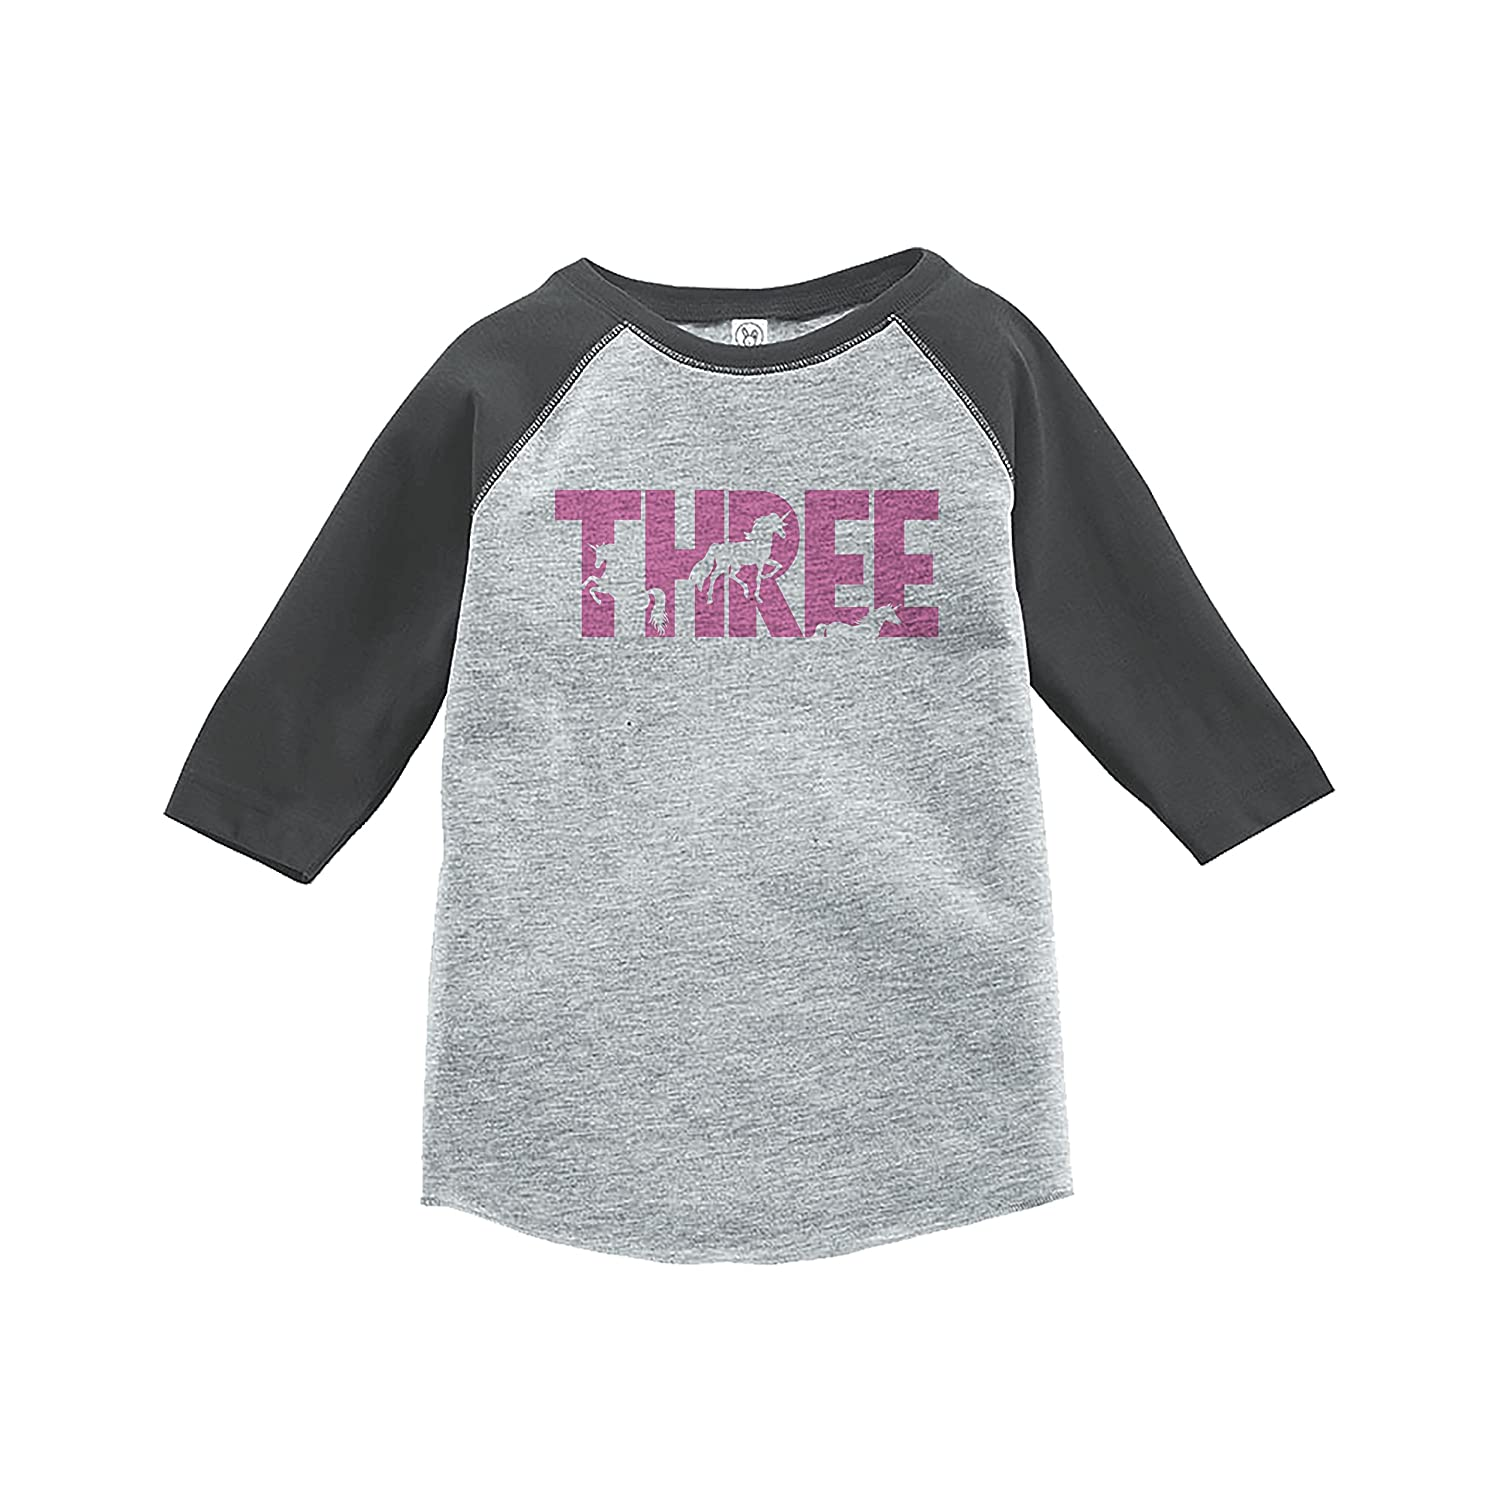 7 ate 9 Apparel Kids Third Birthday Unicorn Raglan Tee Grey